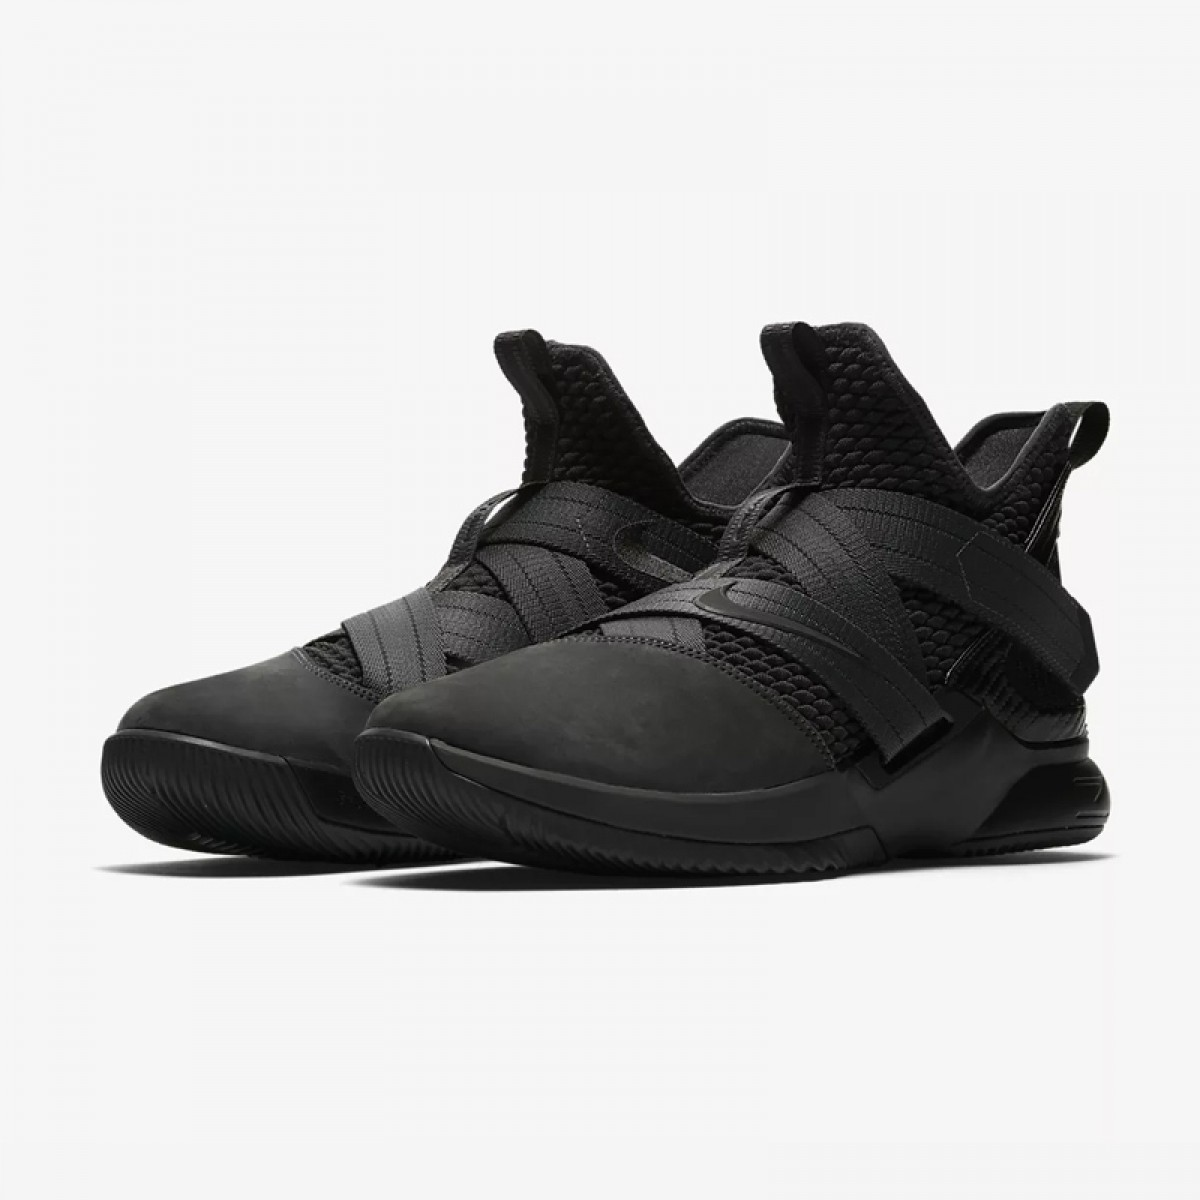 Nike Lebron Soldier XII SFG 'Zero Dark Thirty'